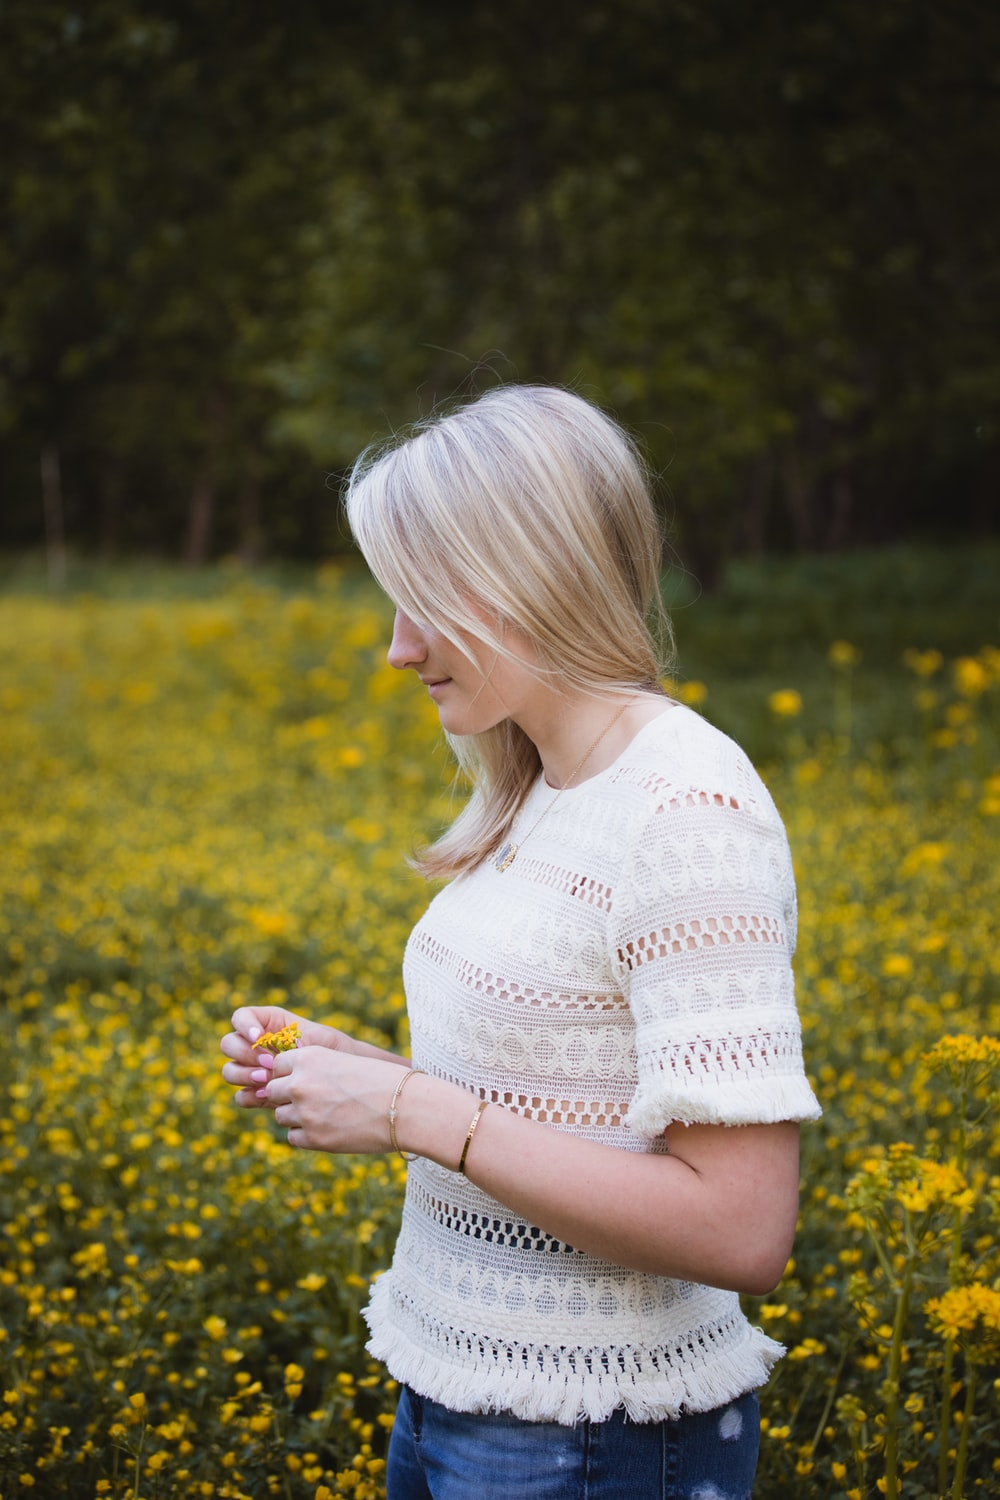 woman wearing white blouse standing and holding yellow flower surrounded with flowers